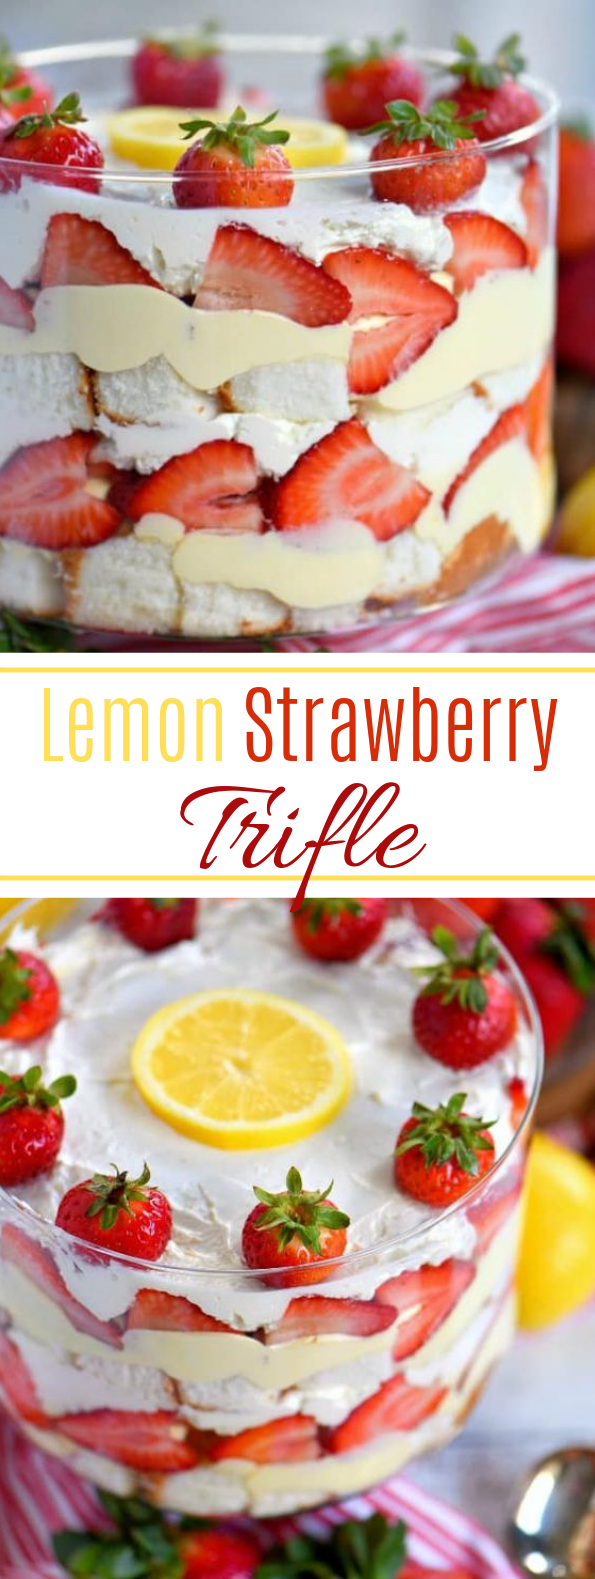 Lemon Strawberry Trifle #sweettreat #dessert